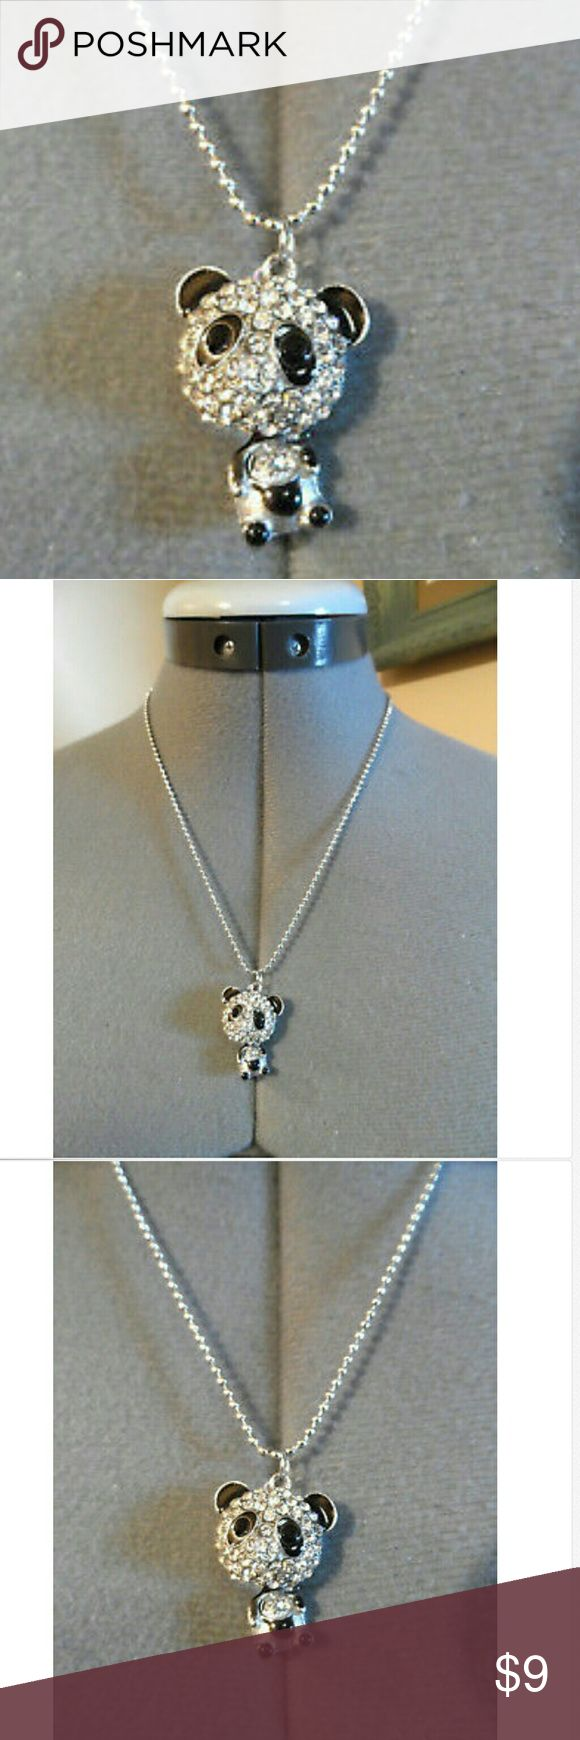 "New RHINESTONE PANDA BEAR Necklace Silver Black Individual monitors may display slightly different colors or hues...   NEW IN FACTORY PACKAGE-  PANDA BEAR Necklace   NECKLACE: approximately 20"", 1mm wide CLOSURE: Clip clasp Pendant: About 1.5""x1"" Costume jewelry Cute little Panda Bear charm encrusted with Rhinestones Dog tag style bead necklace Charm is hollow and bobble head style NEW NEW NEW! unbranded Jewelry Necklaces"